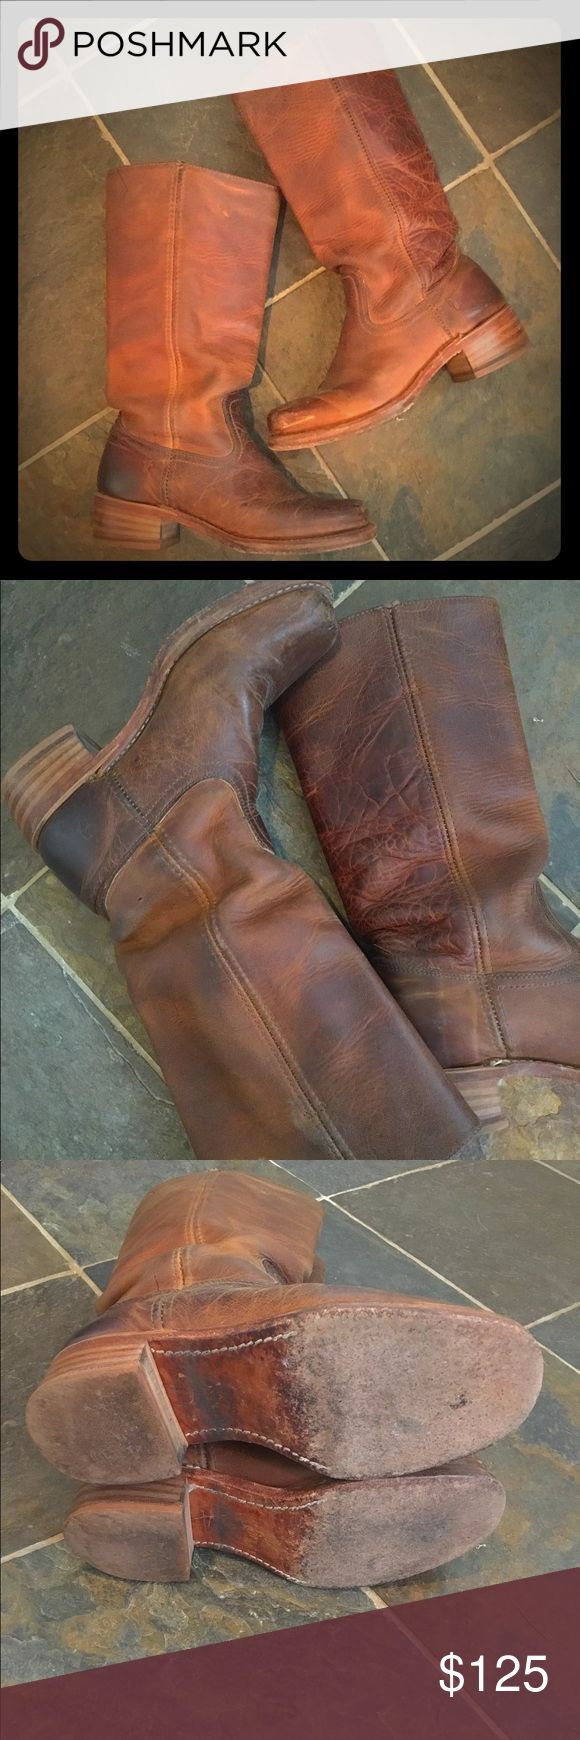 FRYE CAMPUS BOOTS GUC Unique varied texture leather on this pair give them an even more Vintage feel. Well loved but structurally sound. Only selling because I finally found the Harness style in this same color leather. Frye Shoes